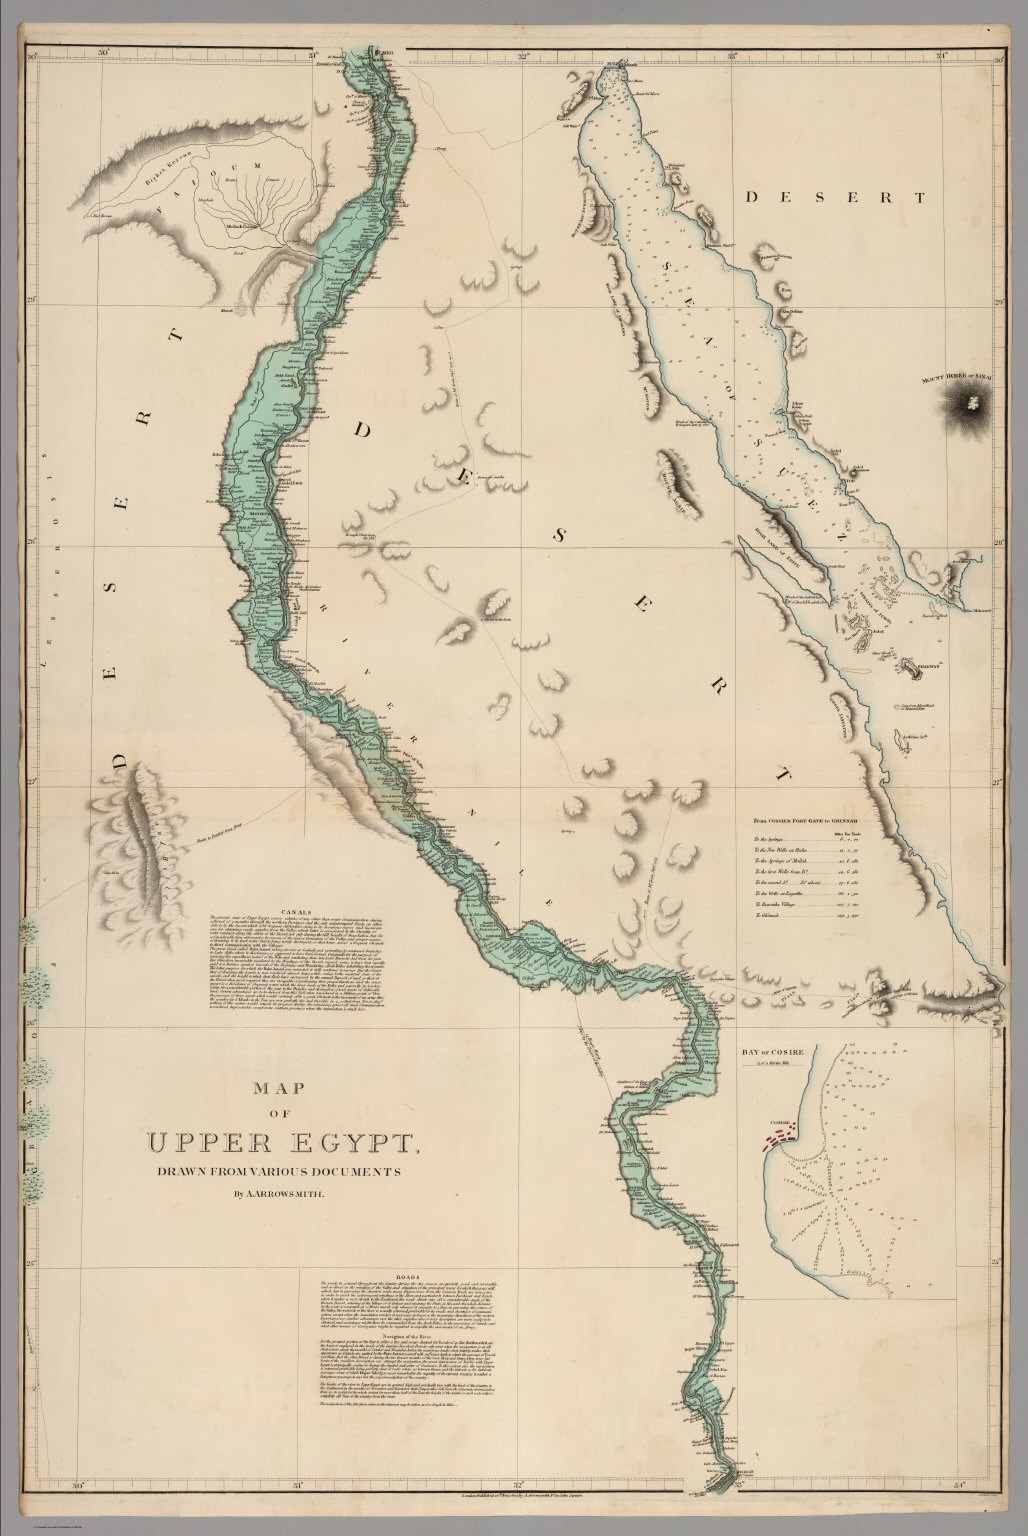 Map Of Upper Egypt Drawn From Various Documents David Rumsey